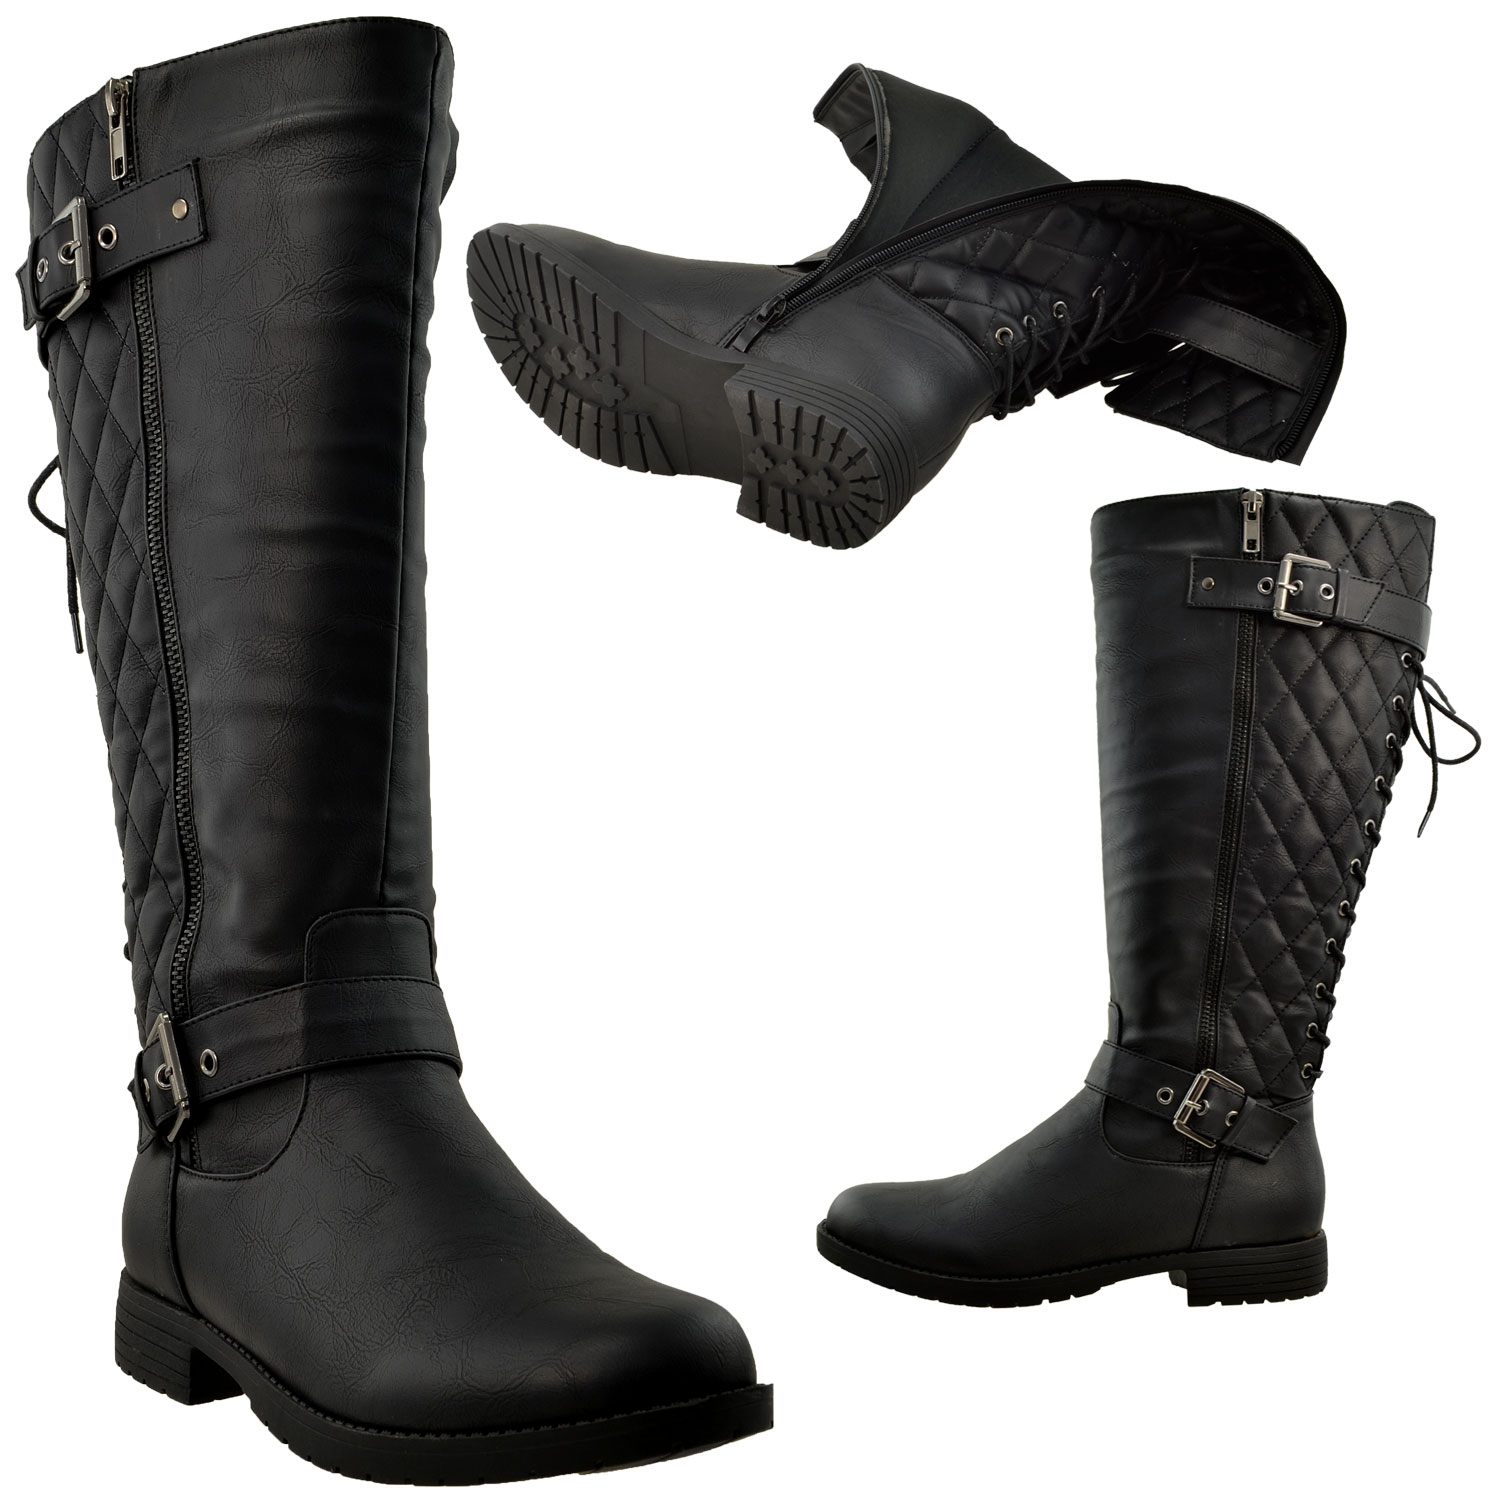 e8c10a5aa8b Details about Womens Knee High Boots Quilted Back Lace Up Adjustable Strap  Shoes Black